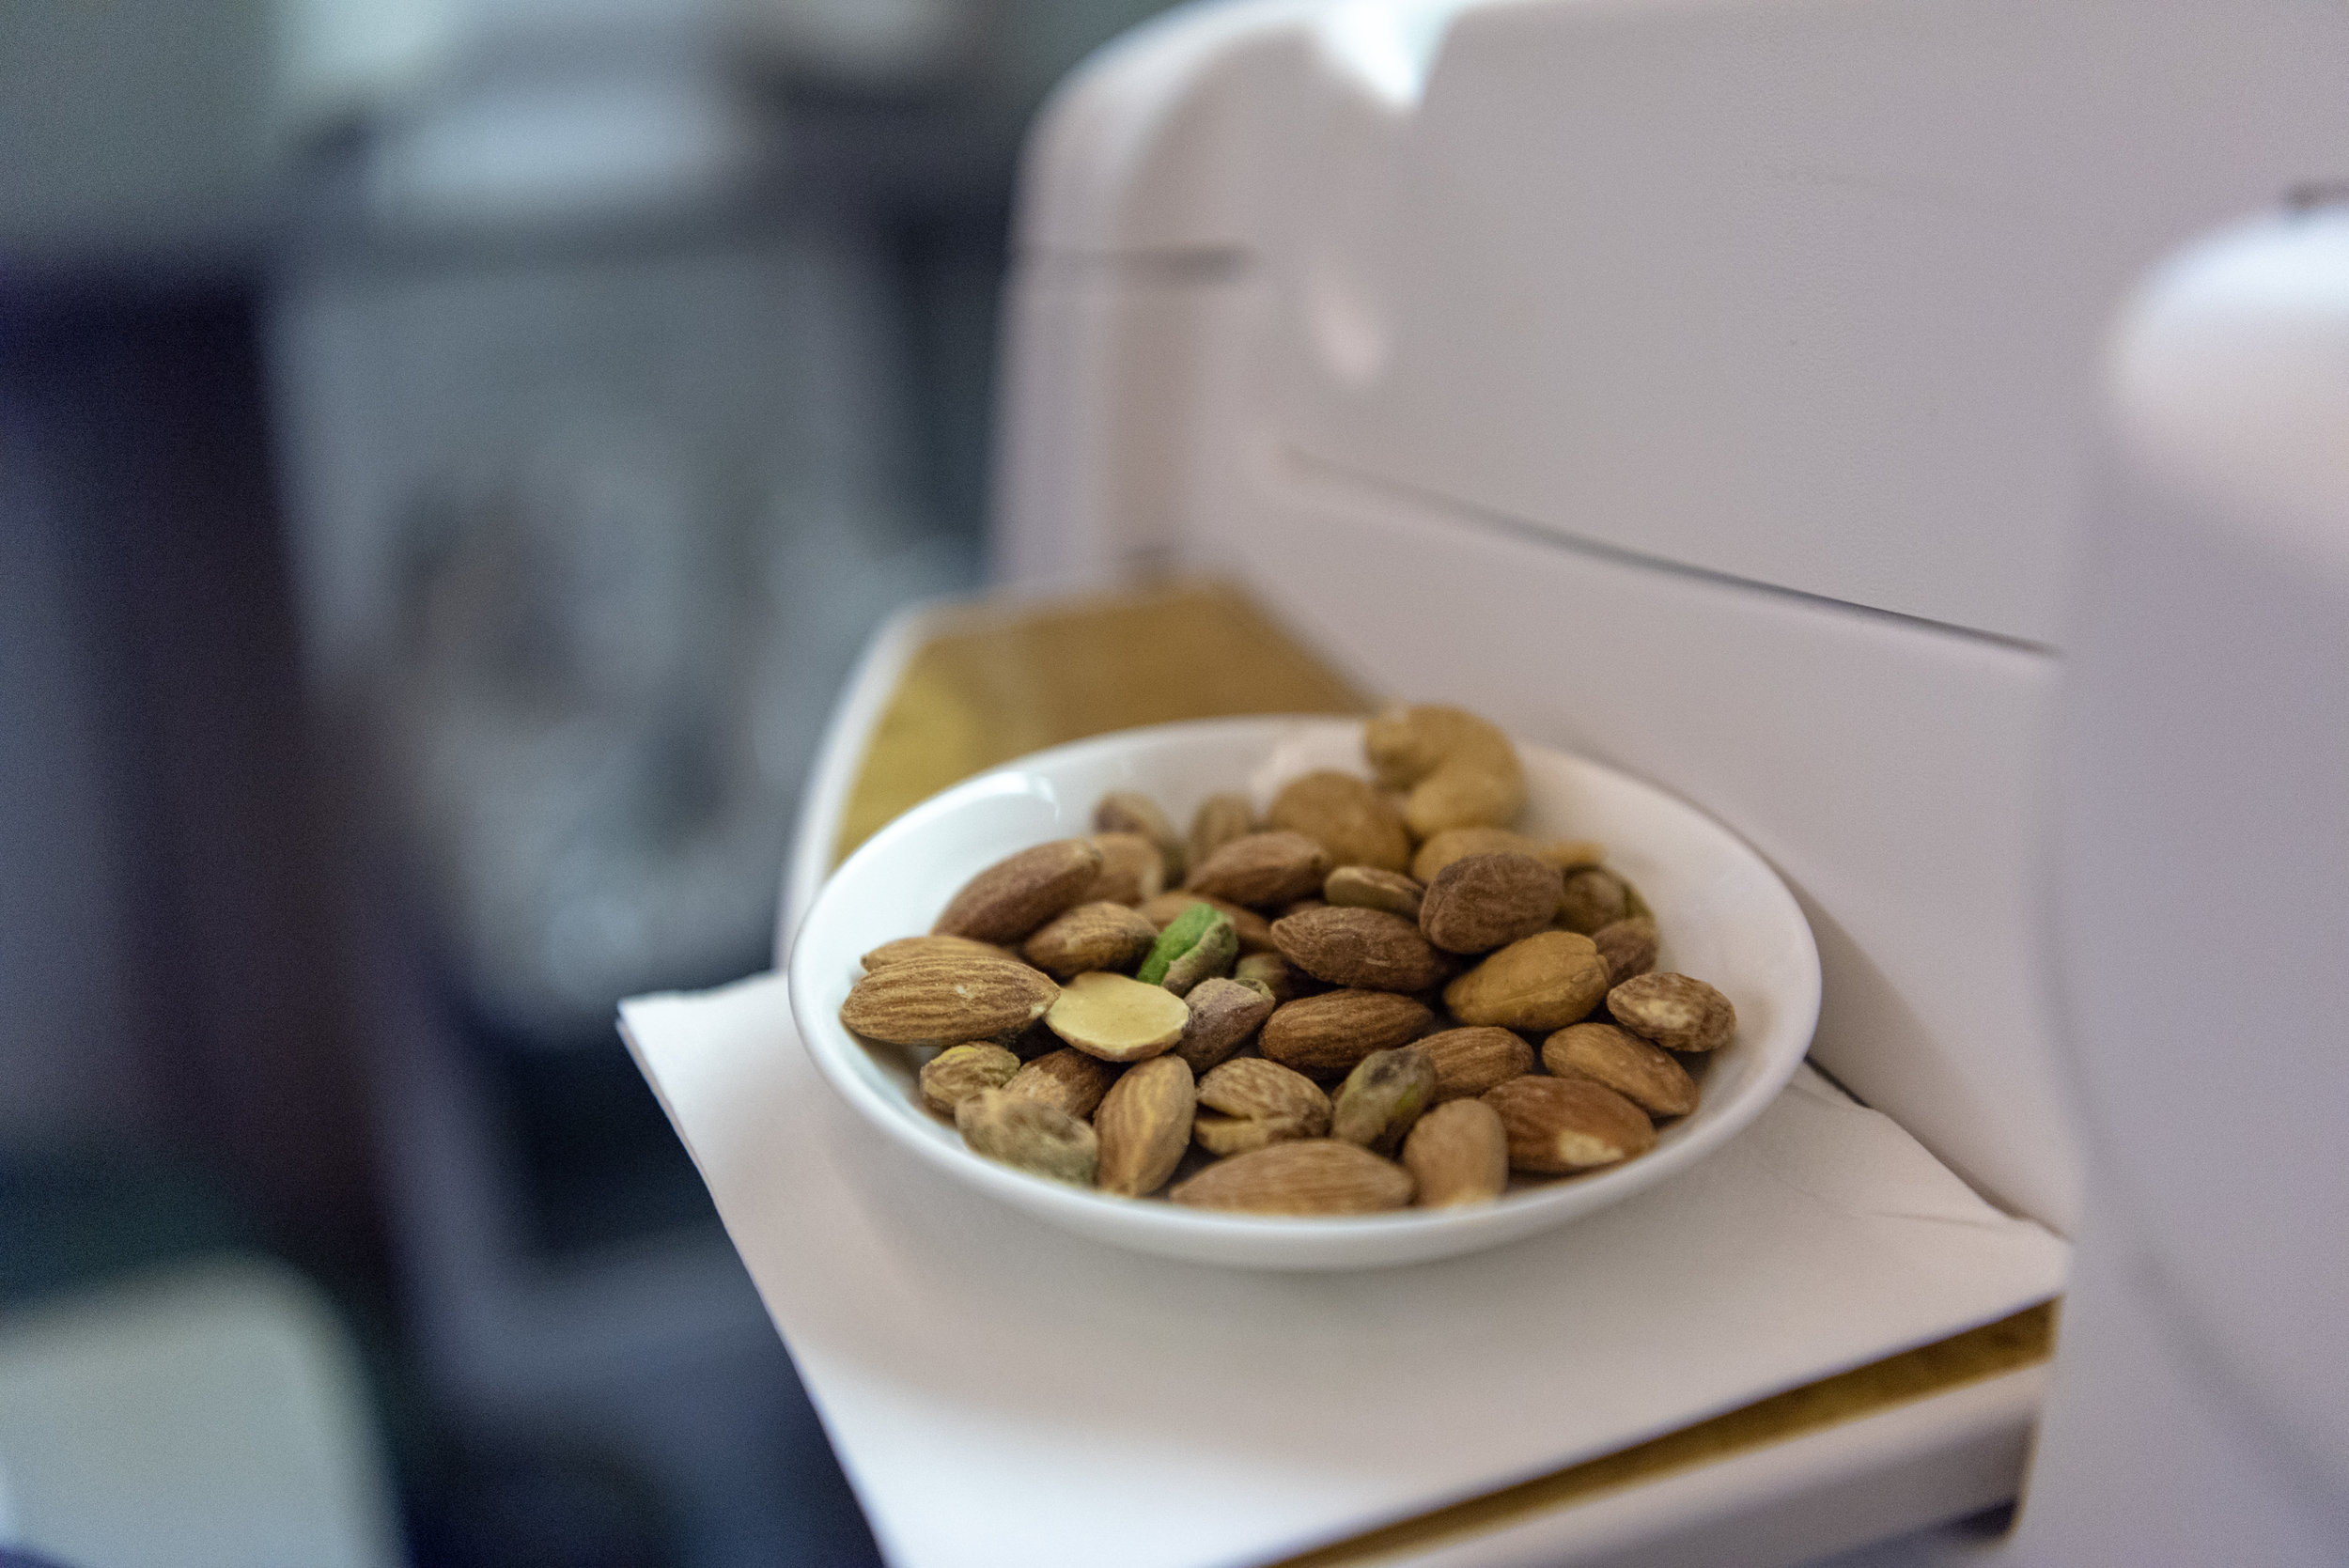 Assorted Nuts  Emirates EK352 Business Class 777-300ER - DXB to SIN